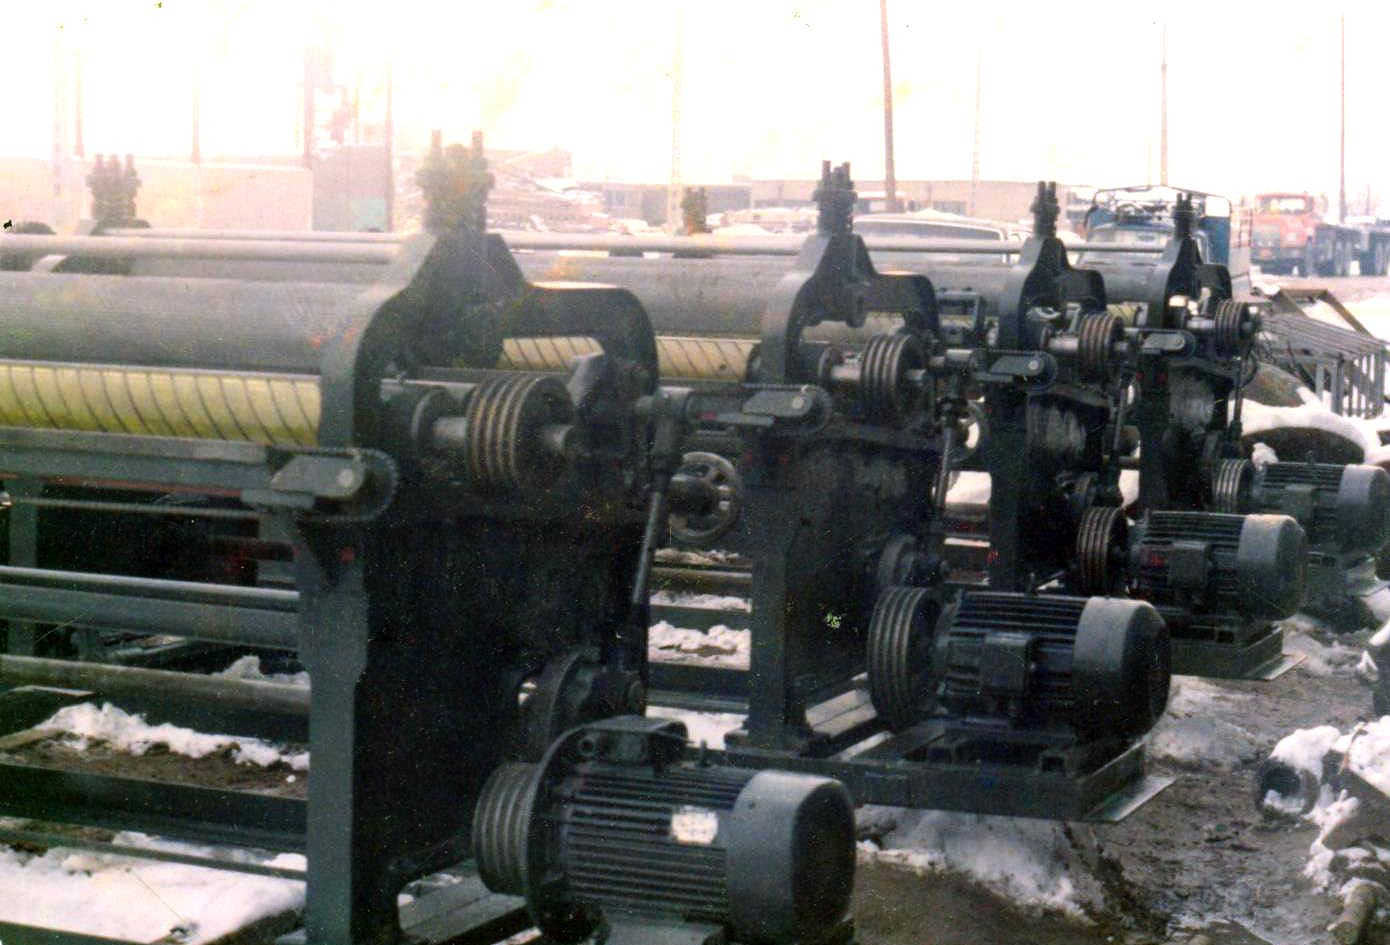 Fleshing Machines built in Tabriz for Leather Industry1980s - تاریخ چرم در ایران